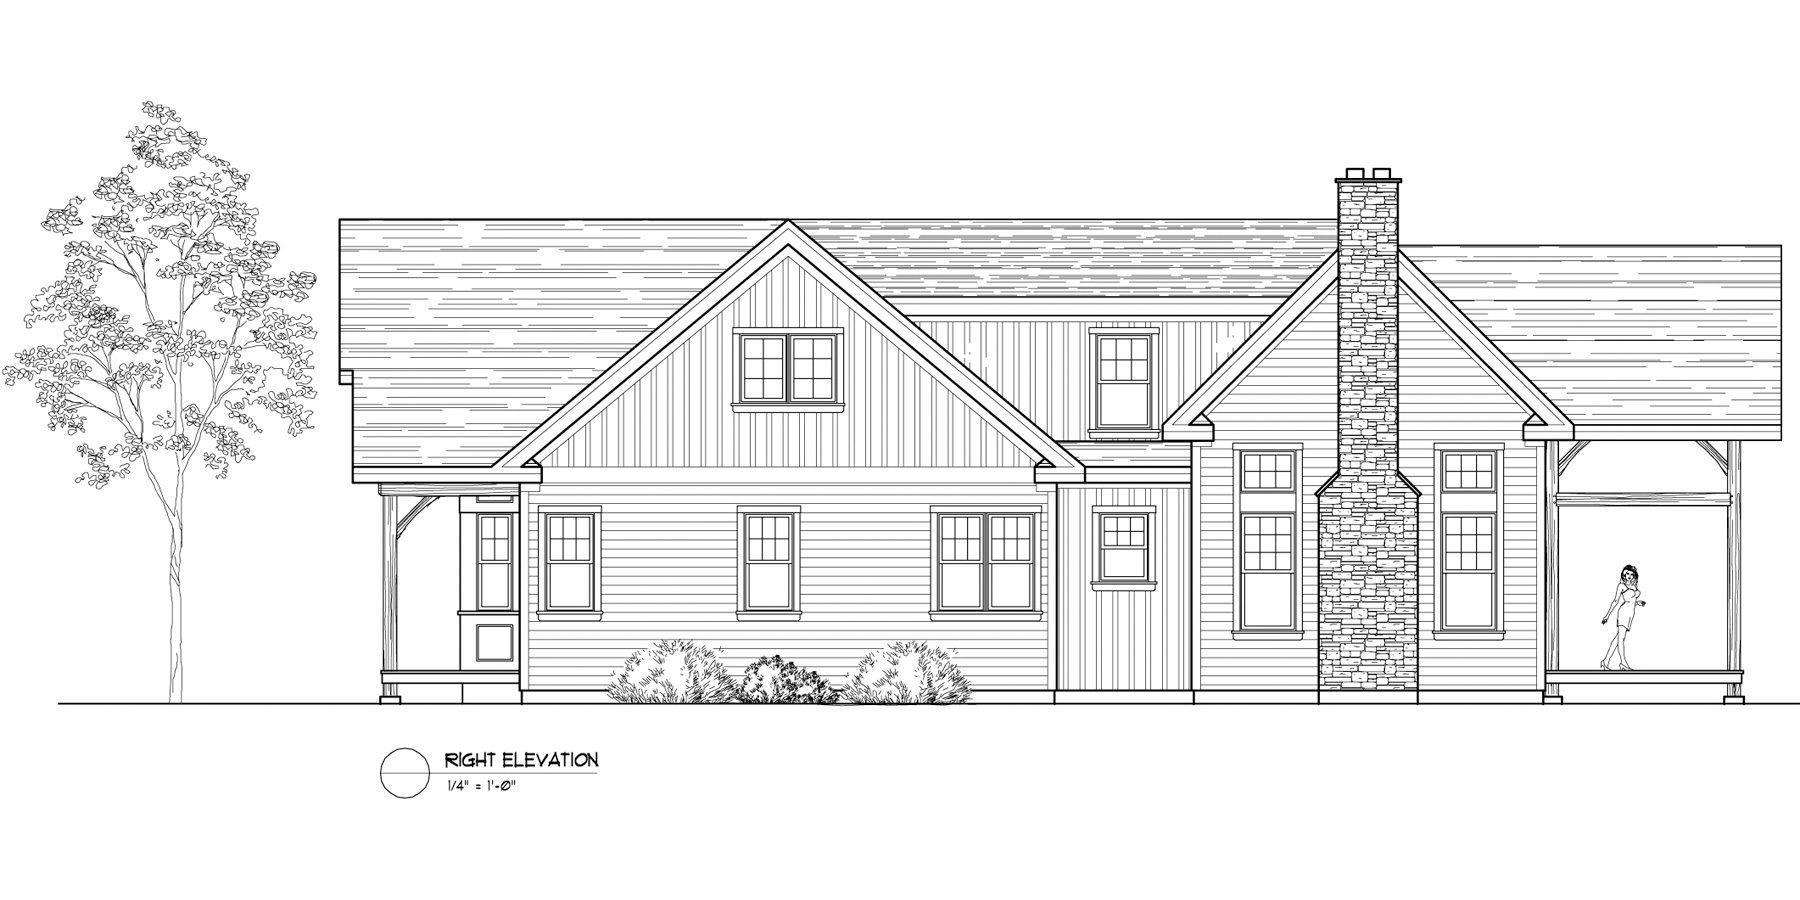 Normerica Timber Frames, House Plan, The Birches 3532, Right Elevation